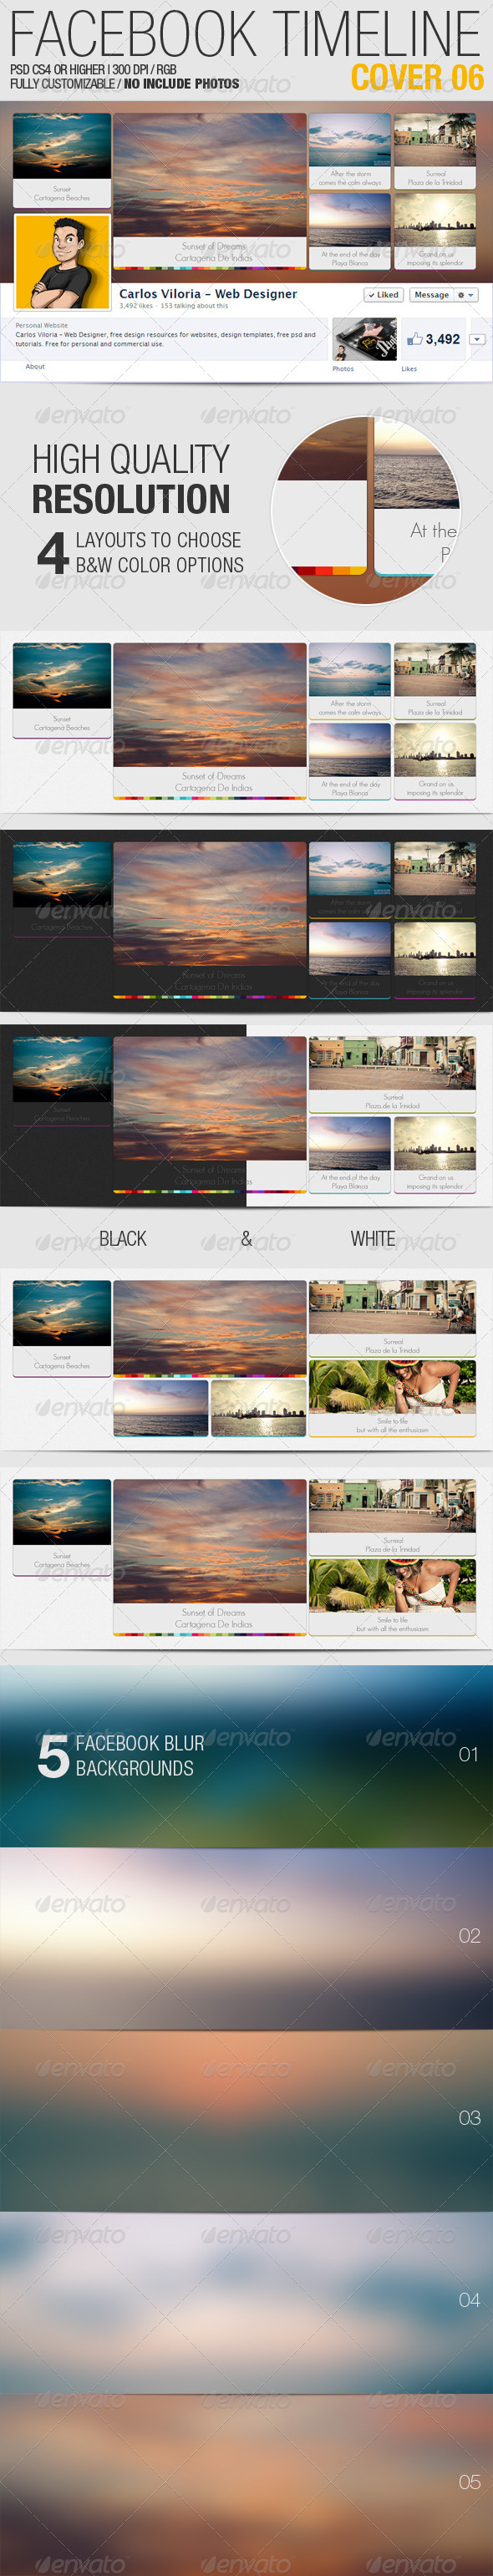 GraphicRiver Facebook Timeline Cover 06 3610516